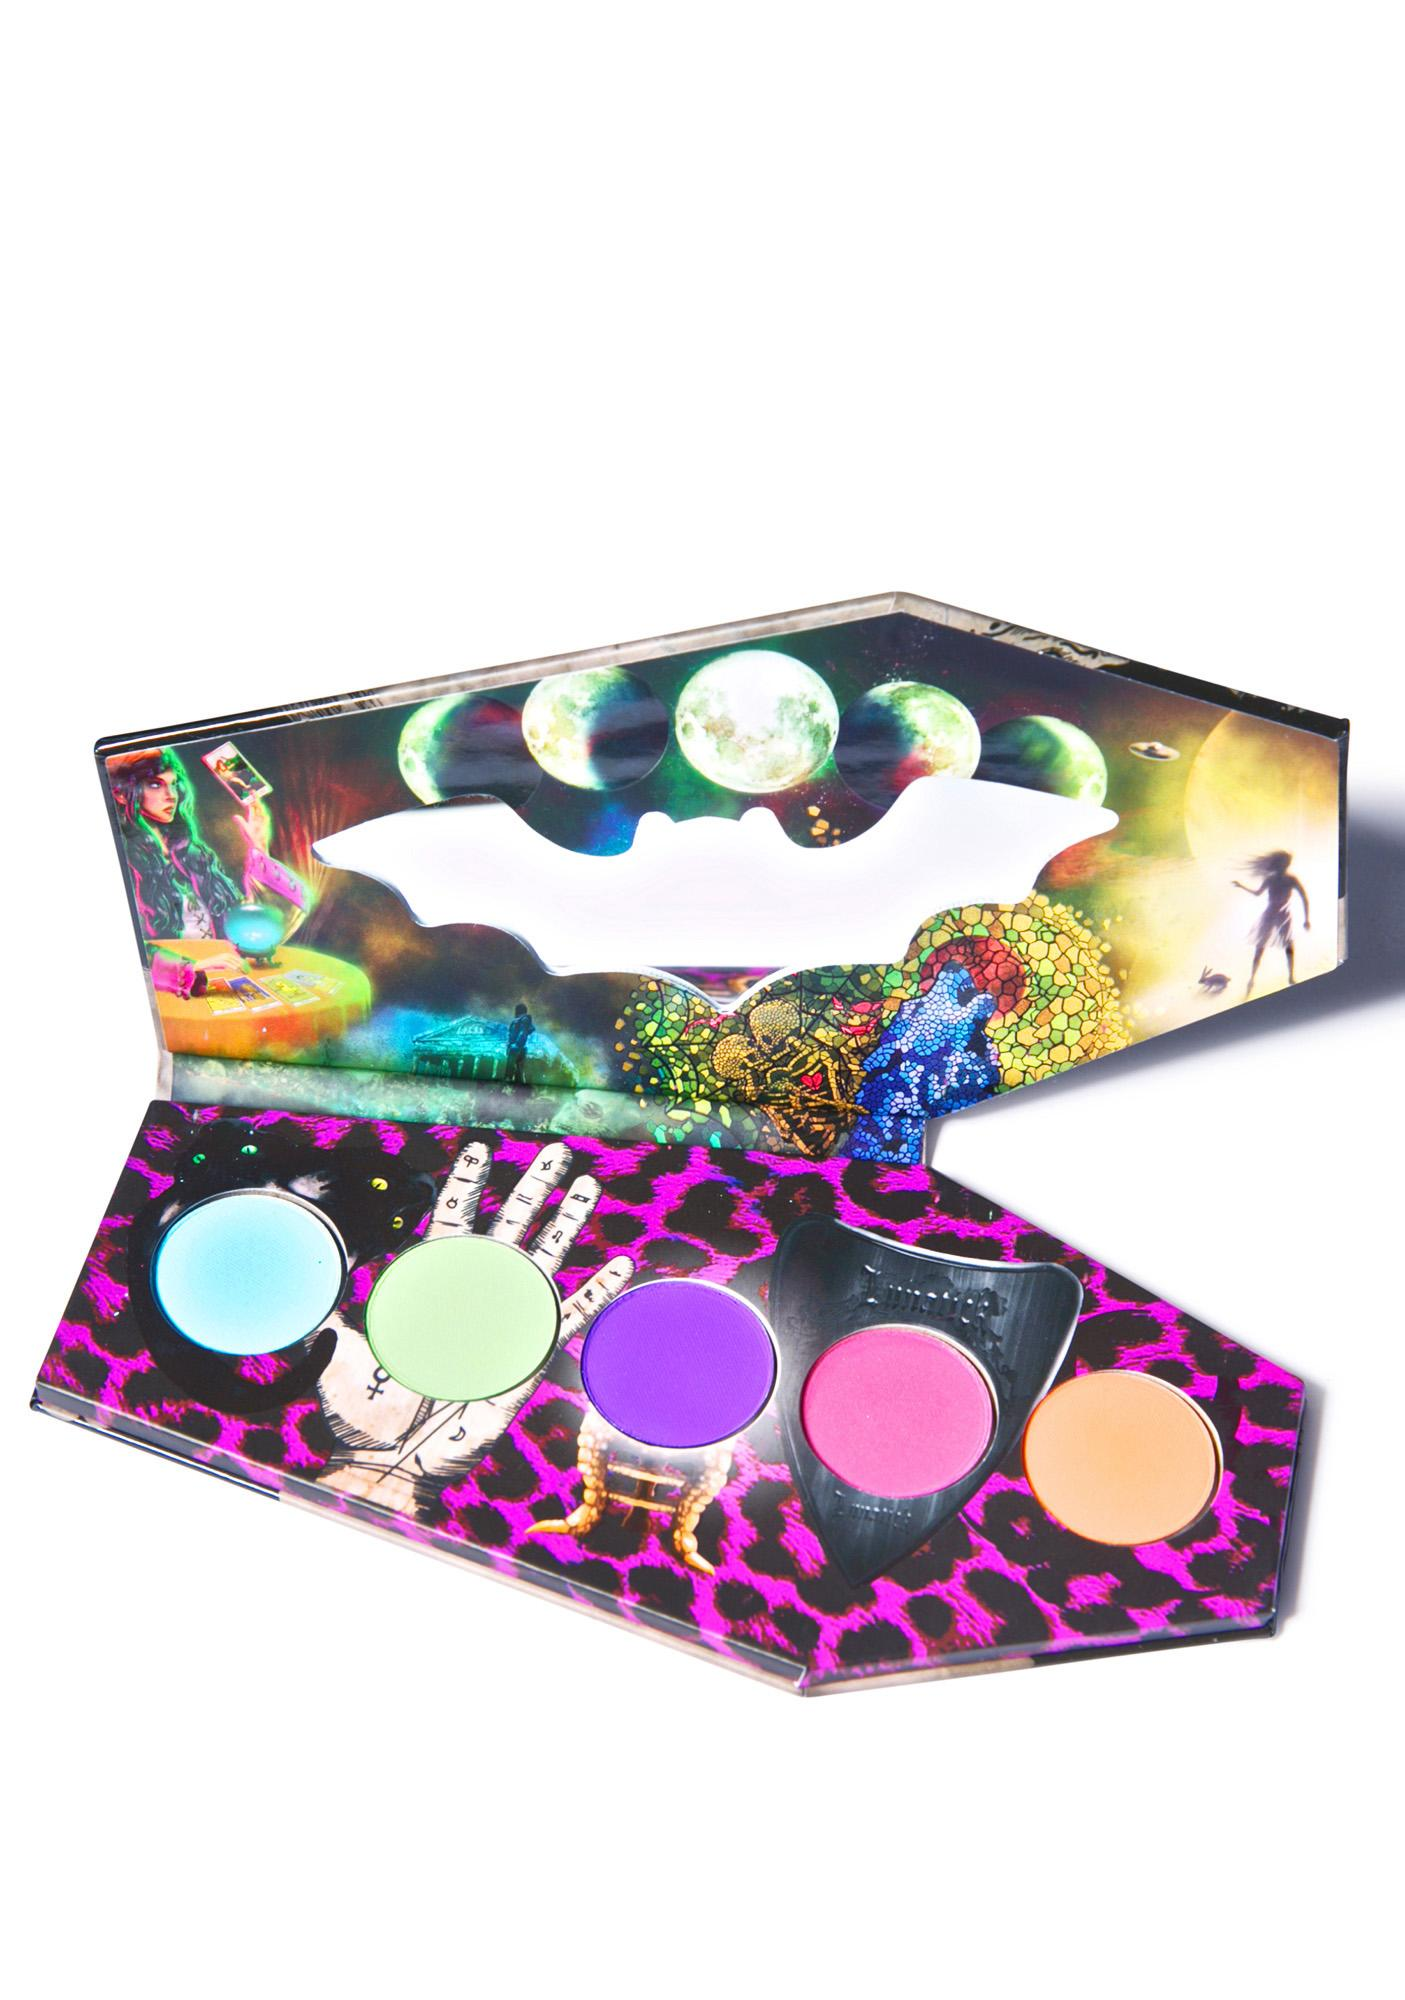 Lunatick Cosmetic Labs Hocus Pocus Coffin Eye Shadow Palette